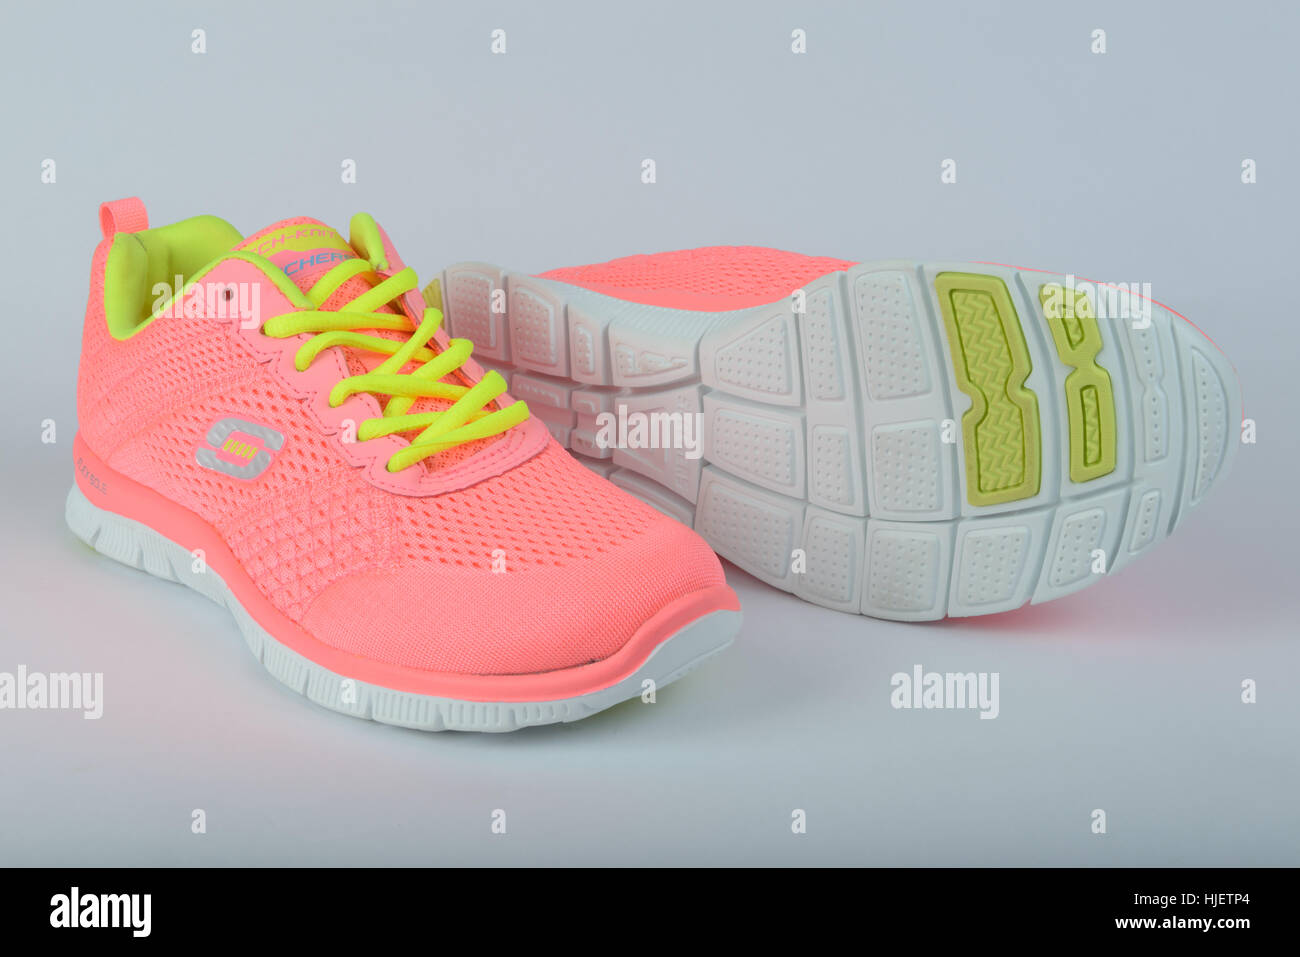 Pair of pink Skechers running shoes cut out isolated on white background - Stock Image